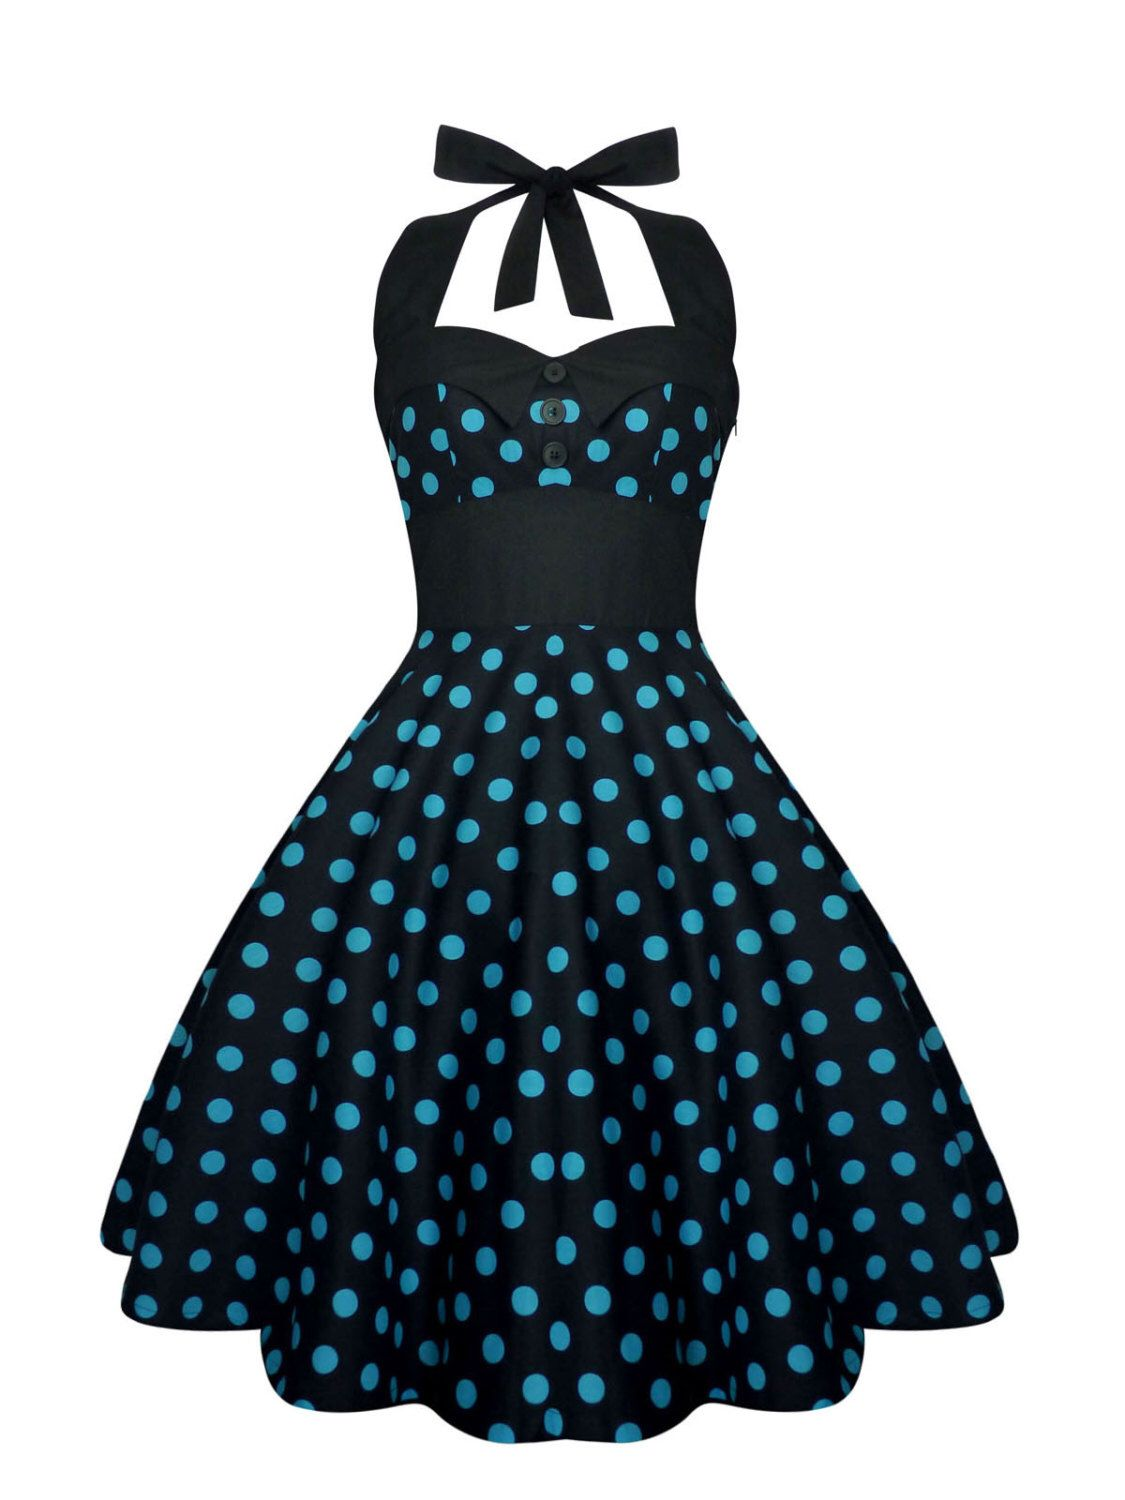 Rockabilly dress pin up dress black polka dot plus size dress rockabilly dress pin up dress black polka dot plus size dress vintage 50s retro gothic clothing lolita steampunk swing halloween prom party ombrellifo Gallery